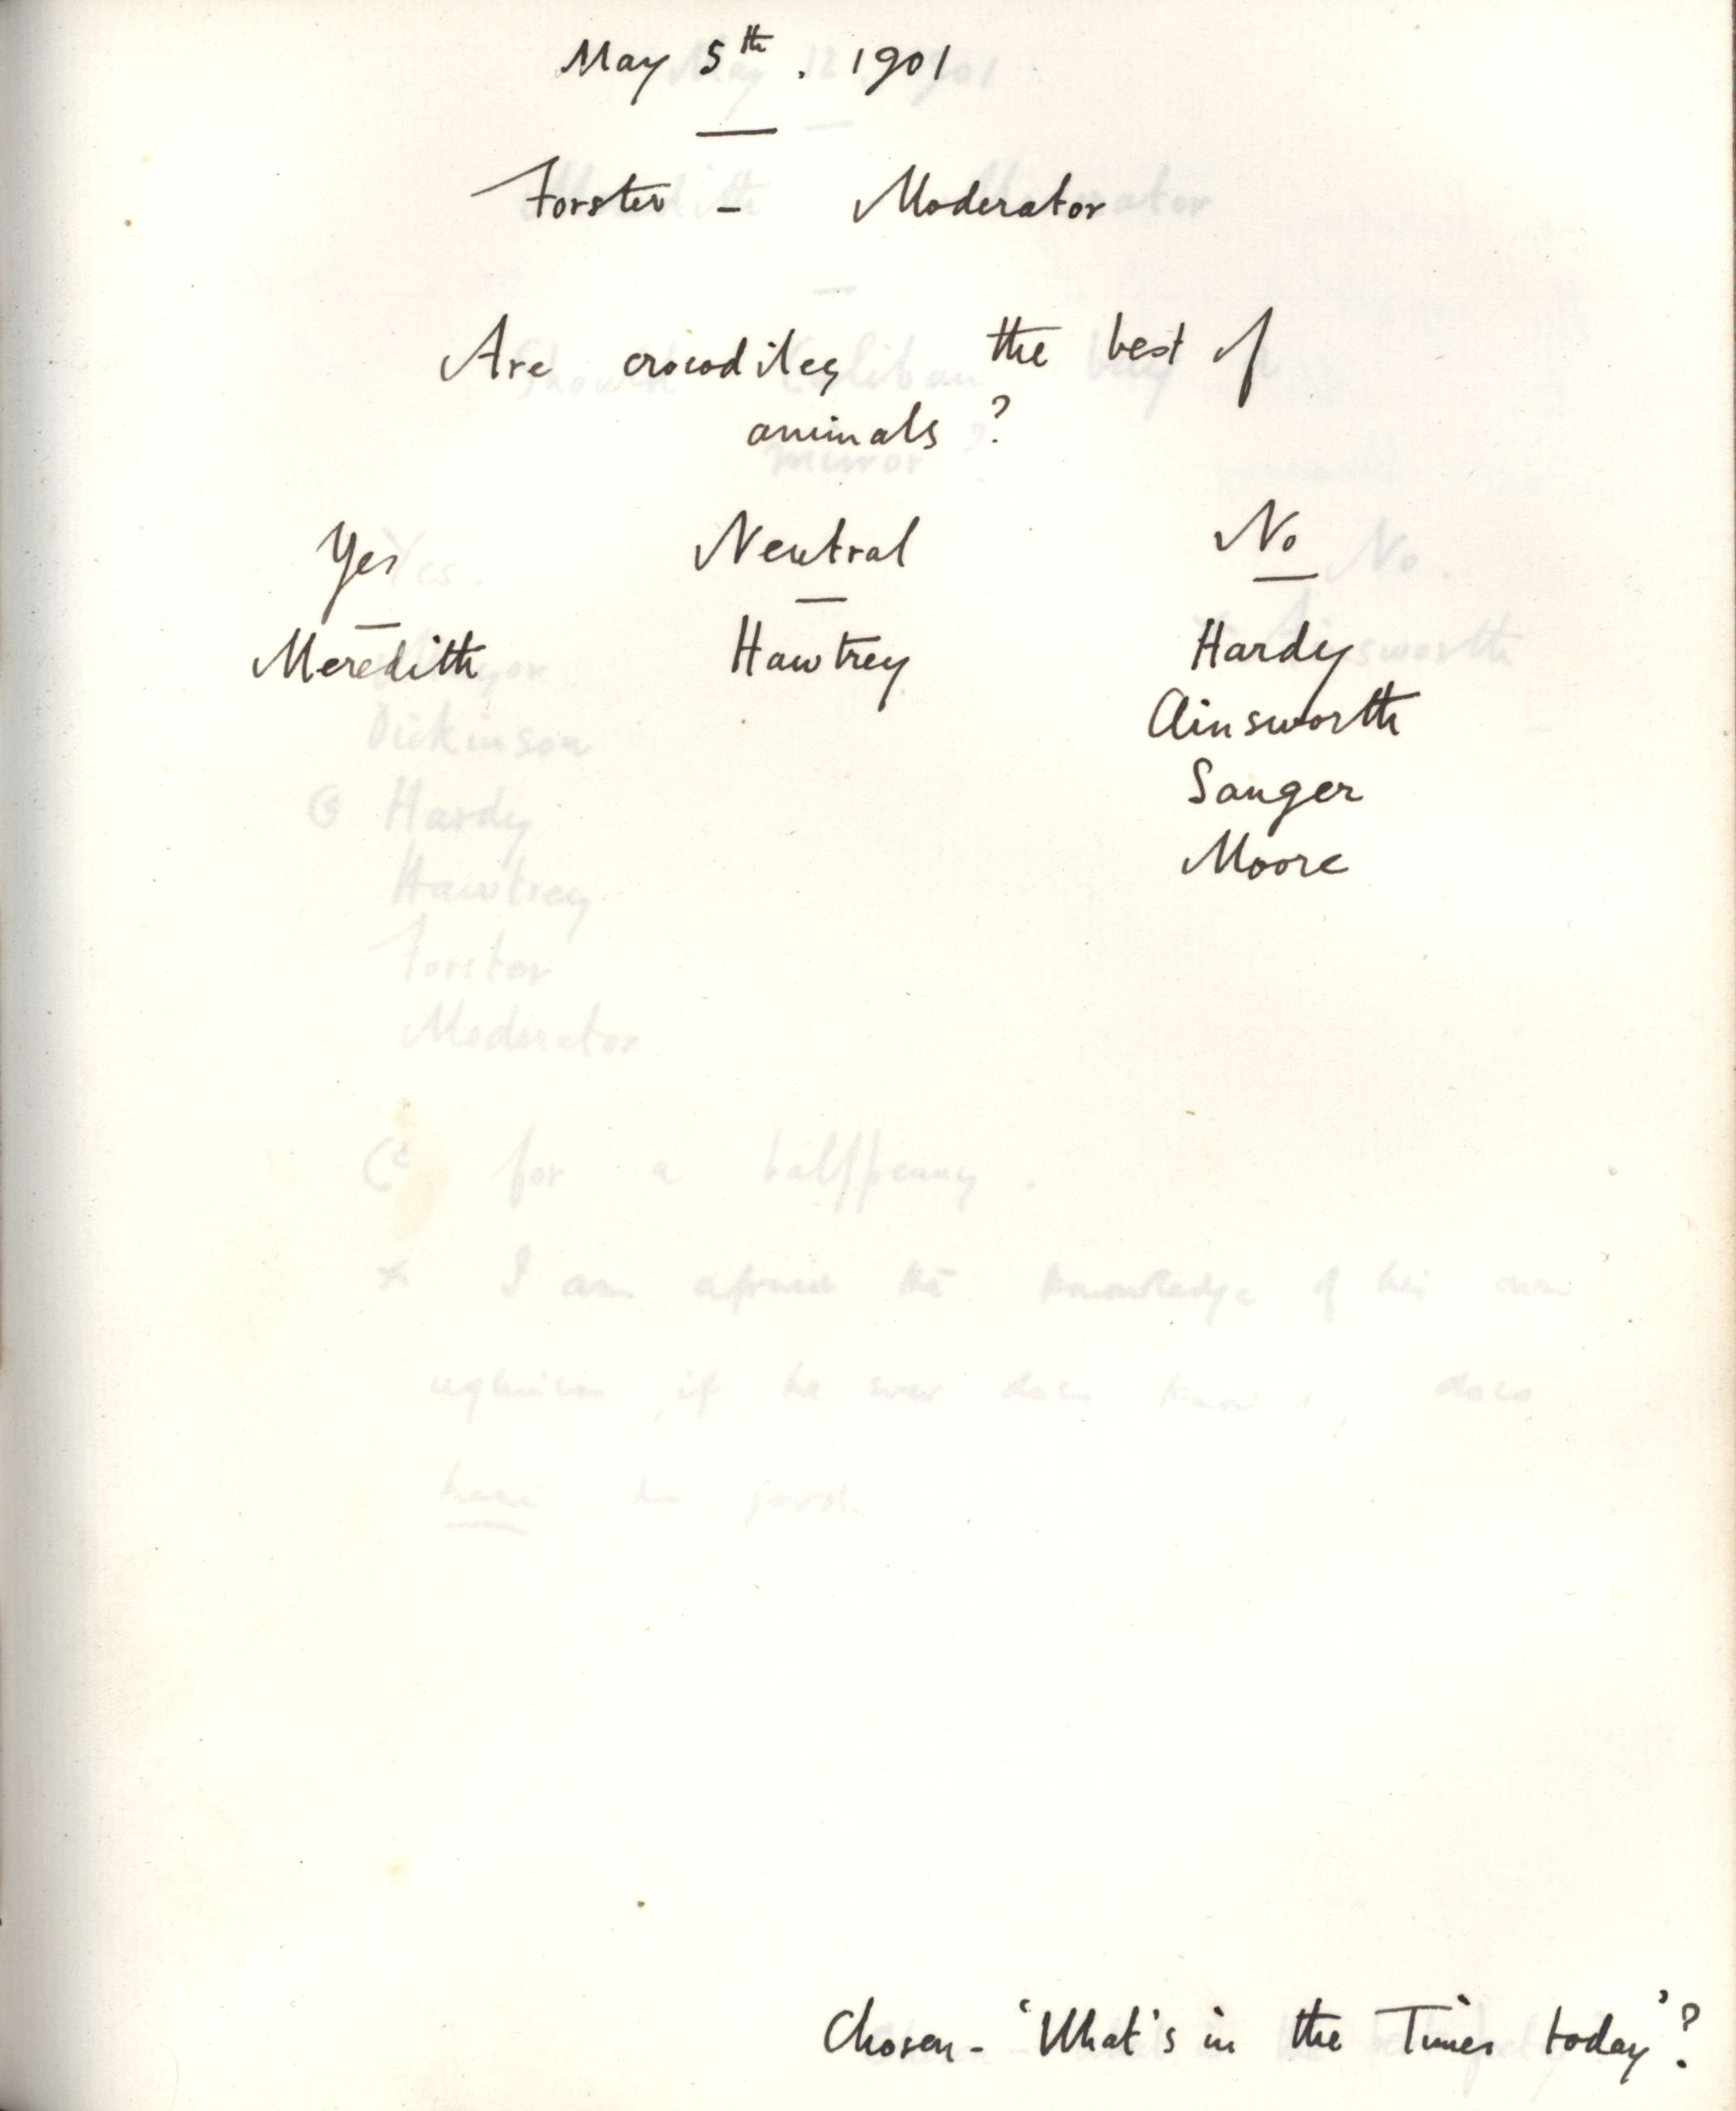 Minutes of a meeting, possibly Forster's first as Moderator, in which he asked 'Are crocodiles the best of animals?' [KCAS/39/1/13, 5 May 1901]